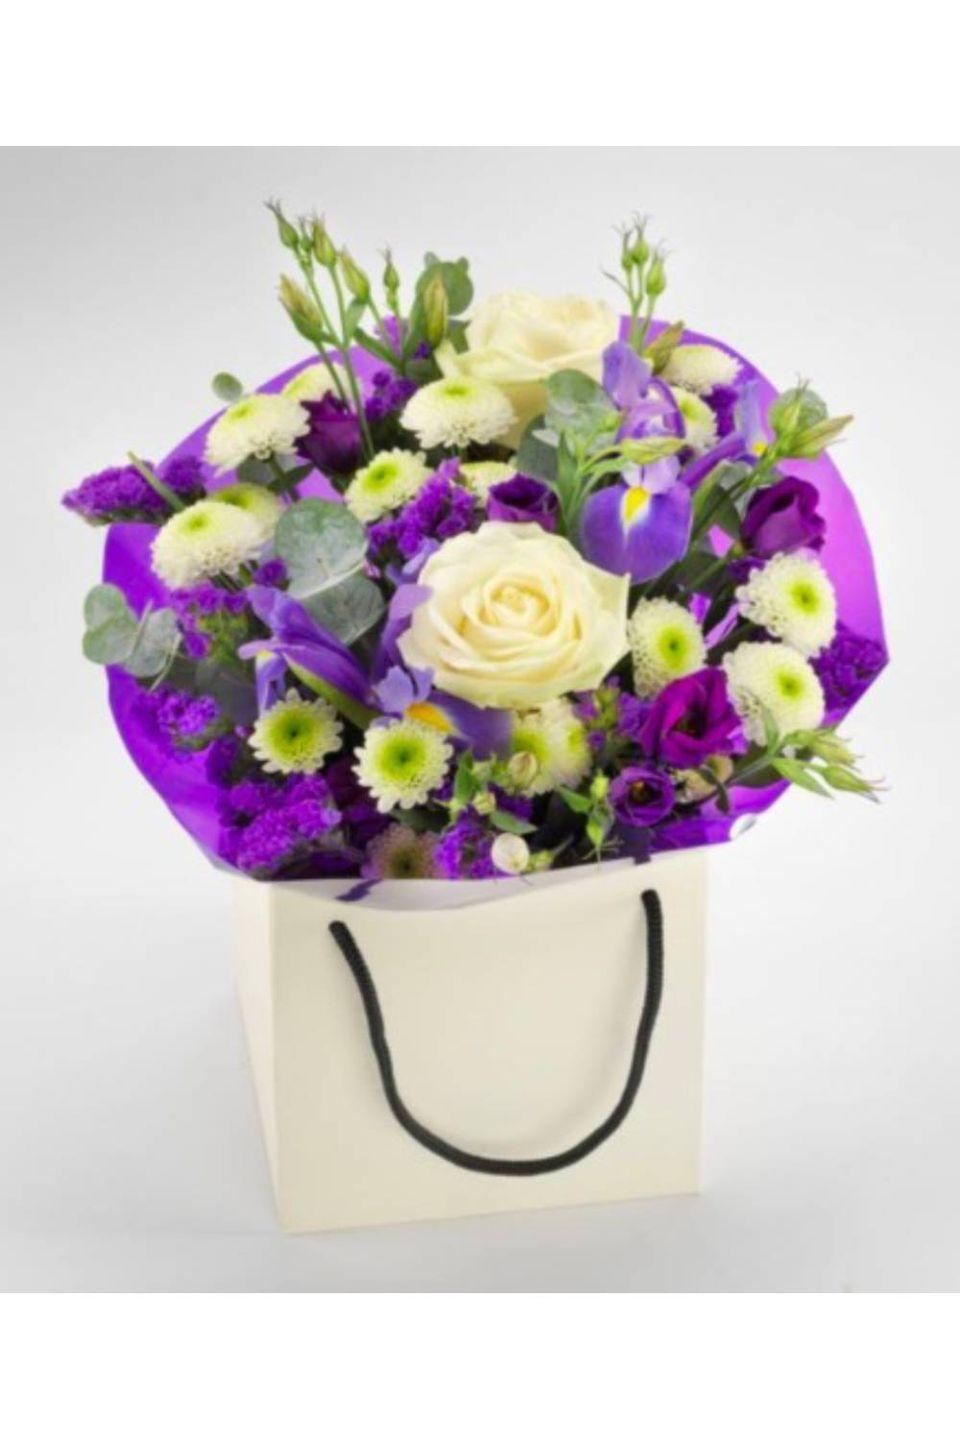 """<p><strong><a class=""""link rapid-noclick-resp"""" href=""""https://www.waitroseflorist.com/same-day-delivery/same-day-simply-joy-bouquet-843324"""" rel=""""nofollow noopener"""" target=""""_blank"""" data-ylk=""""slk:BUY NOW"""">BUY NOW</a> Simply Joy, £37.00, Waitrose Floris</strong><strong>t</strong></p><p>In case you didn't know, Waitrose has a florist - that also does same day flower delivery. Via its network of over 1400 professional florists, they can deliver bouquets on the same day Monday - Saturday, providing orders are placed by 2pm. They offer 12 options, ranging from £37.00 to £50.00</p>"""